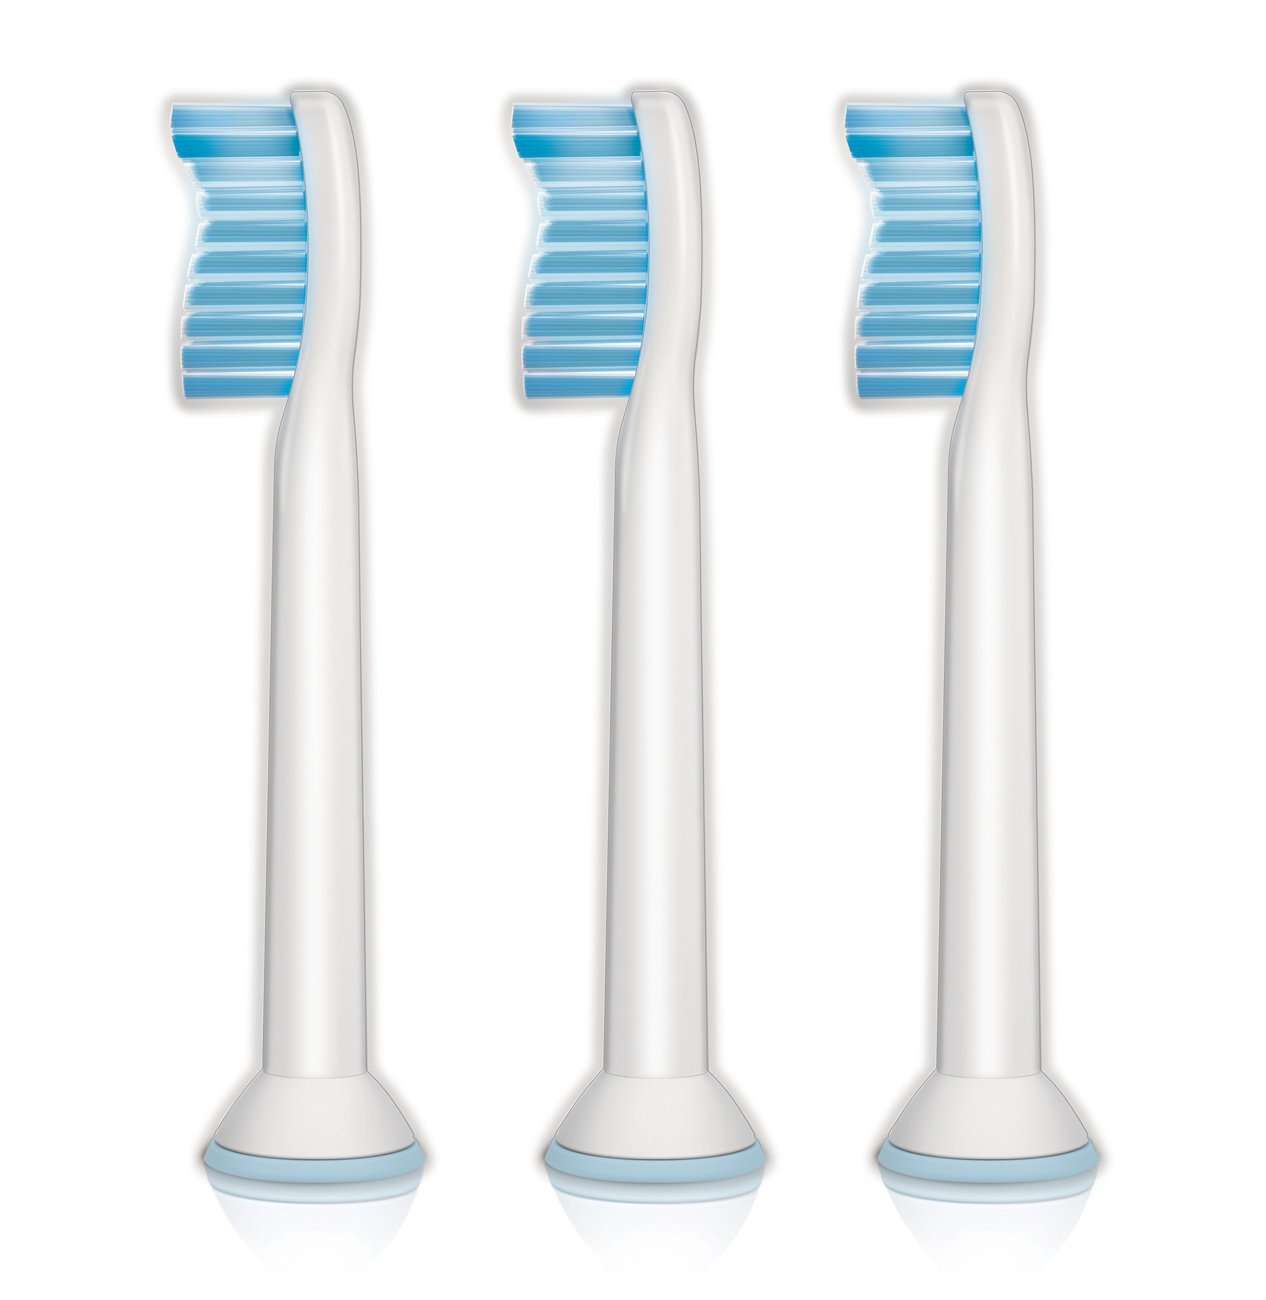 Genuine Philips Sonicare Sensitive replacement toothbrush heads for sensitive teeth, HX6053/64, 3-pk by Philips Sonicare